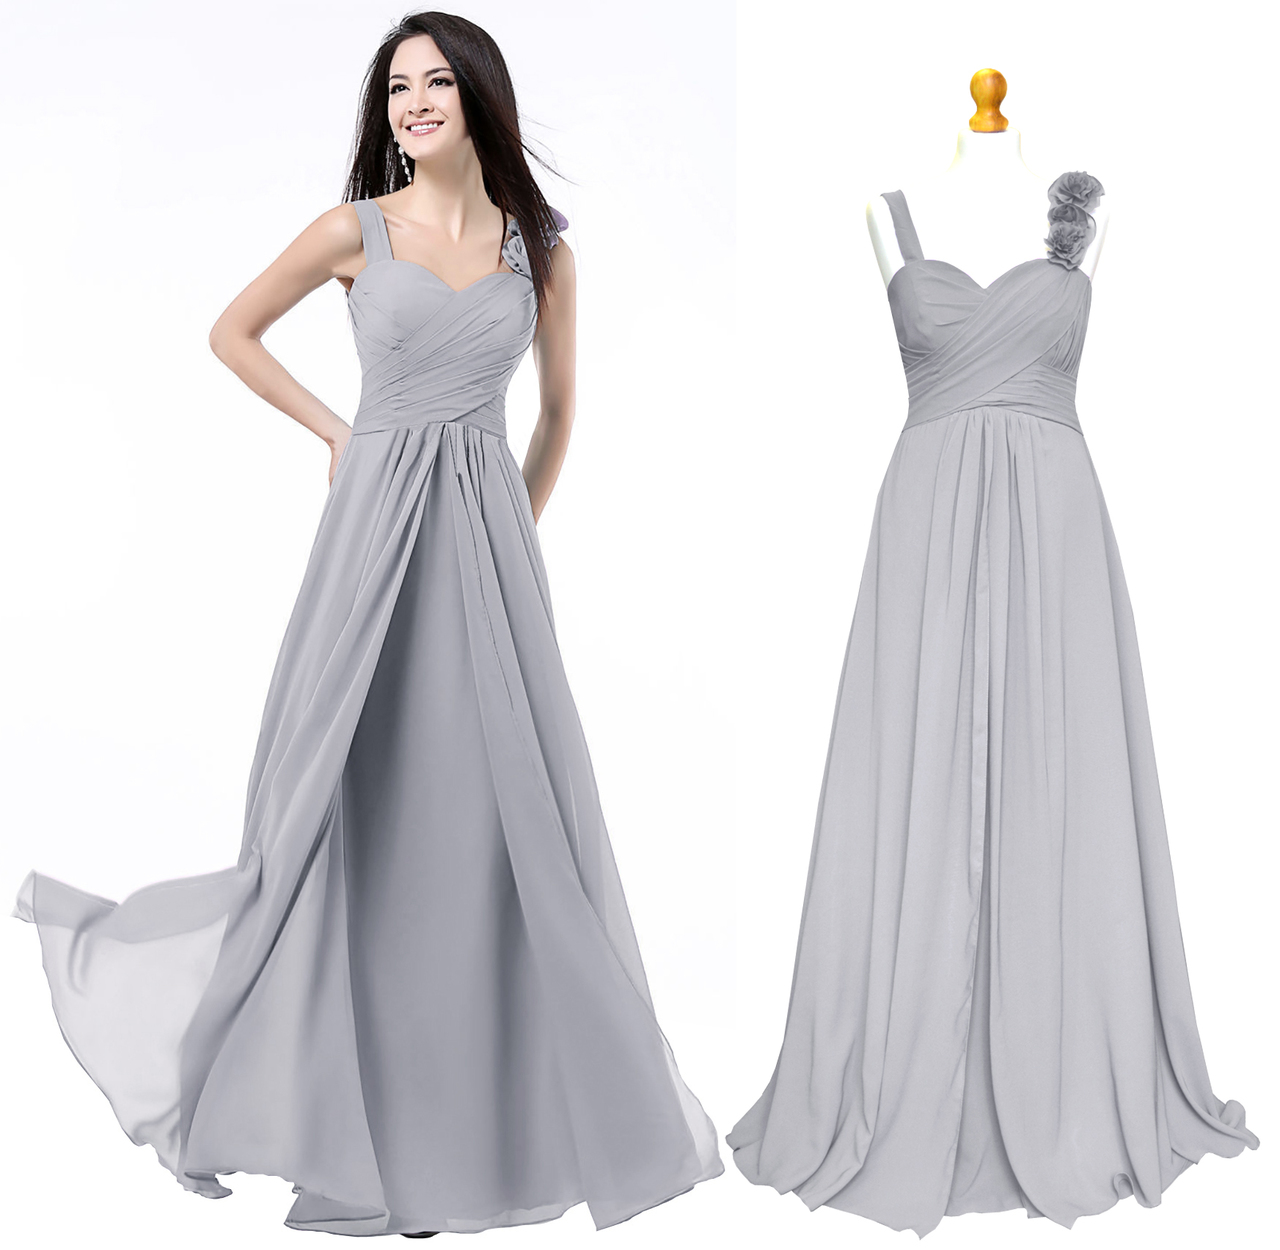 1390e113b2 ... Grey Coral Teal New Formal Long Evening Ball Gown Party Prom Bridesmaid  ...